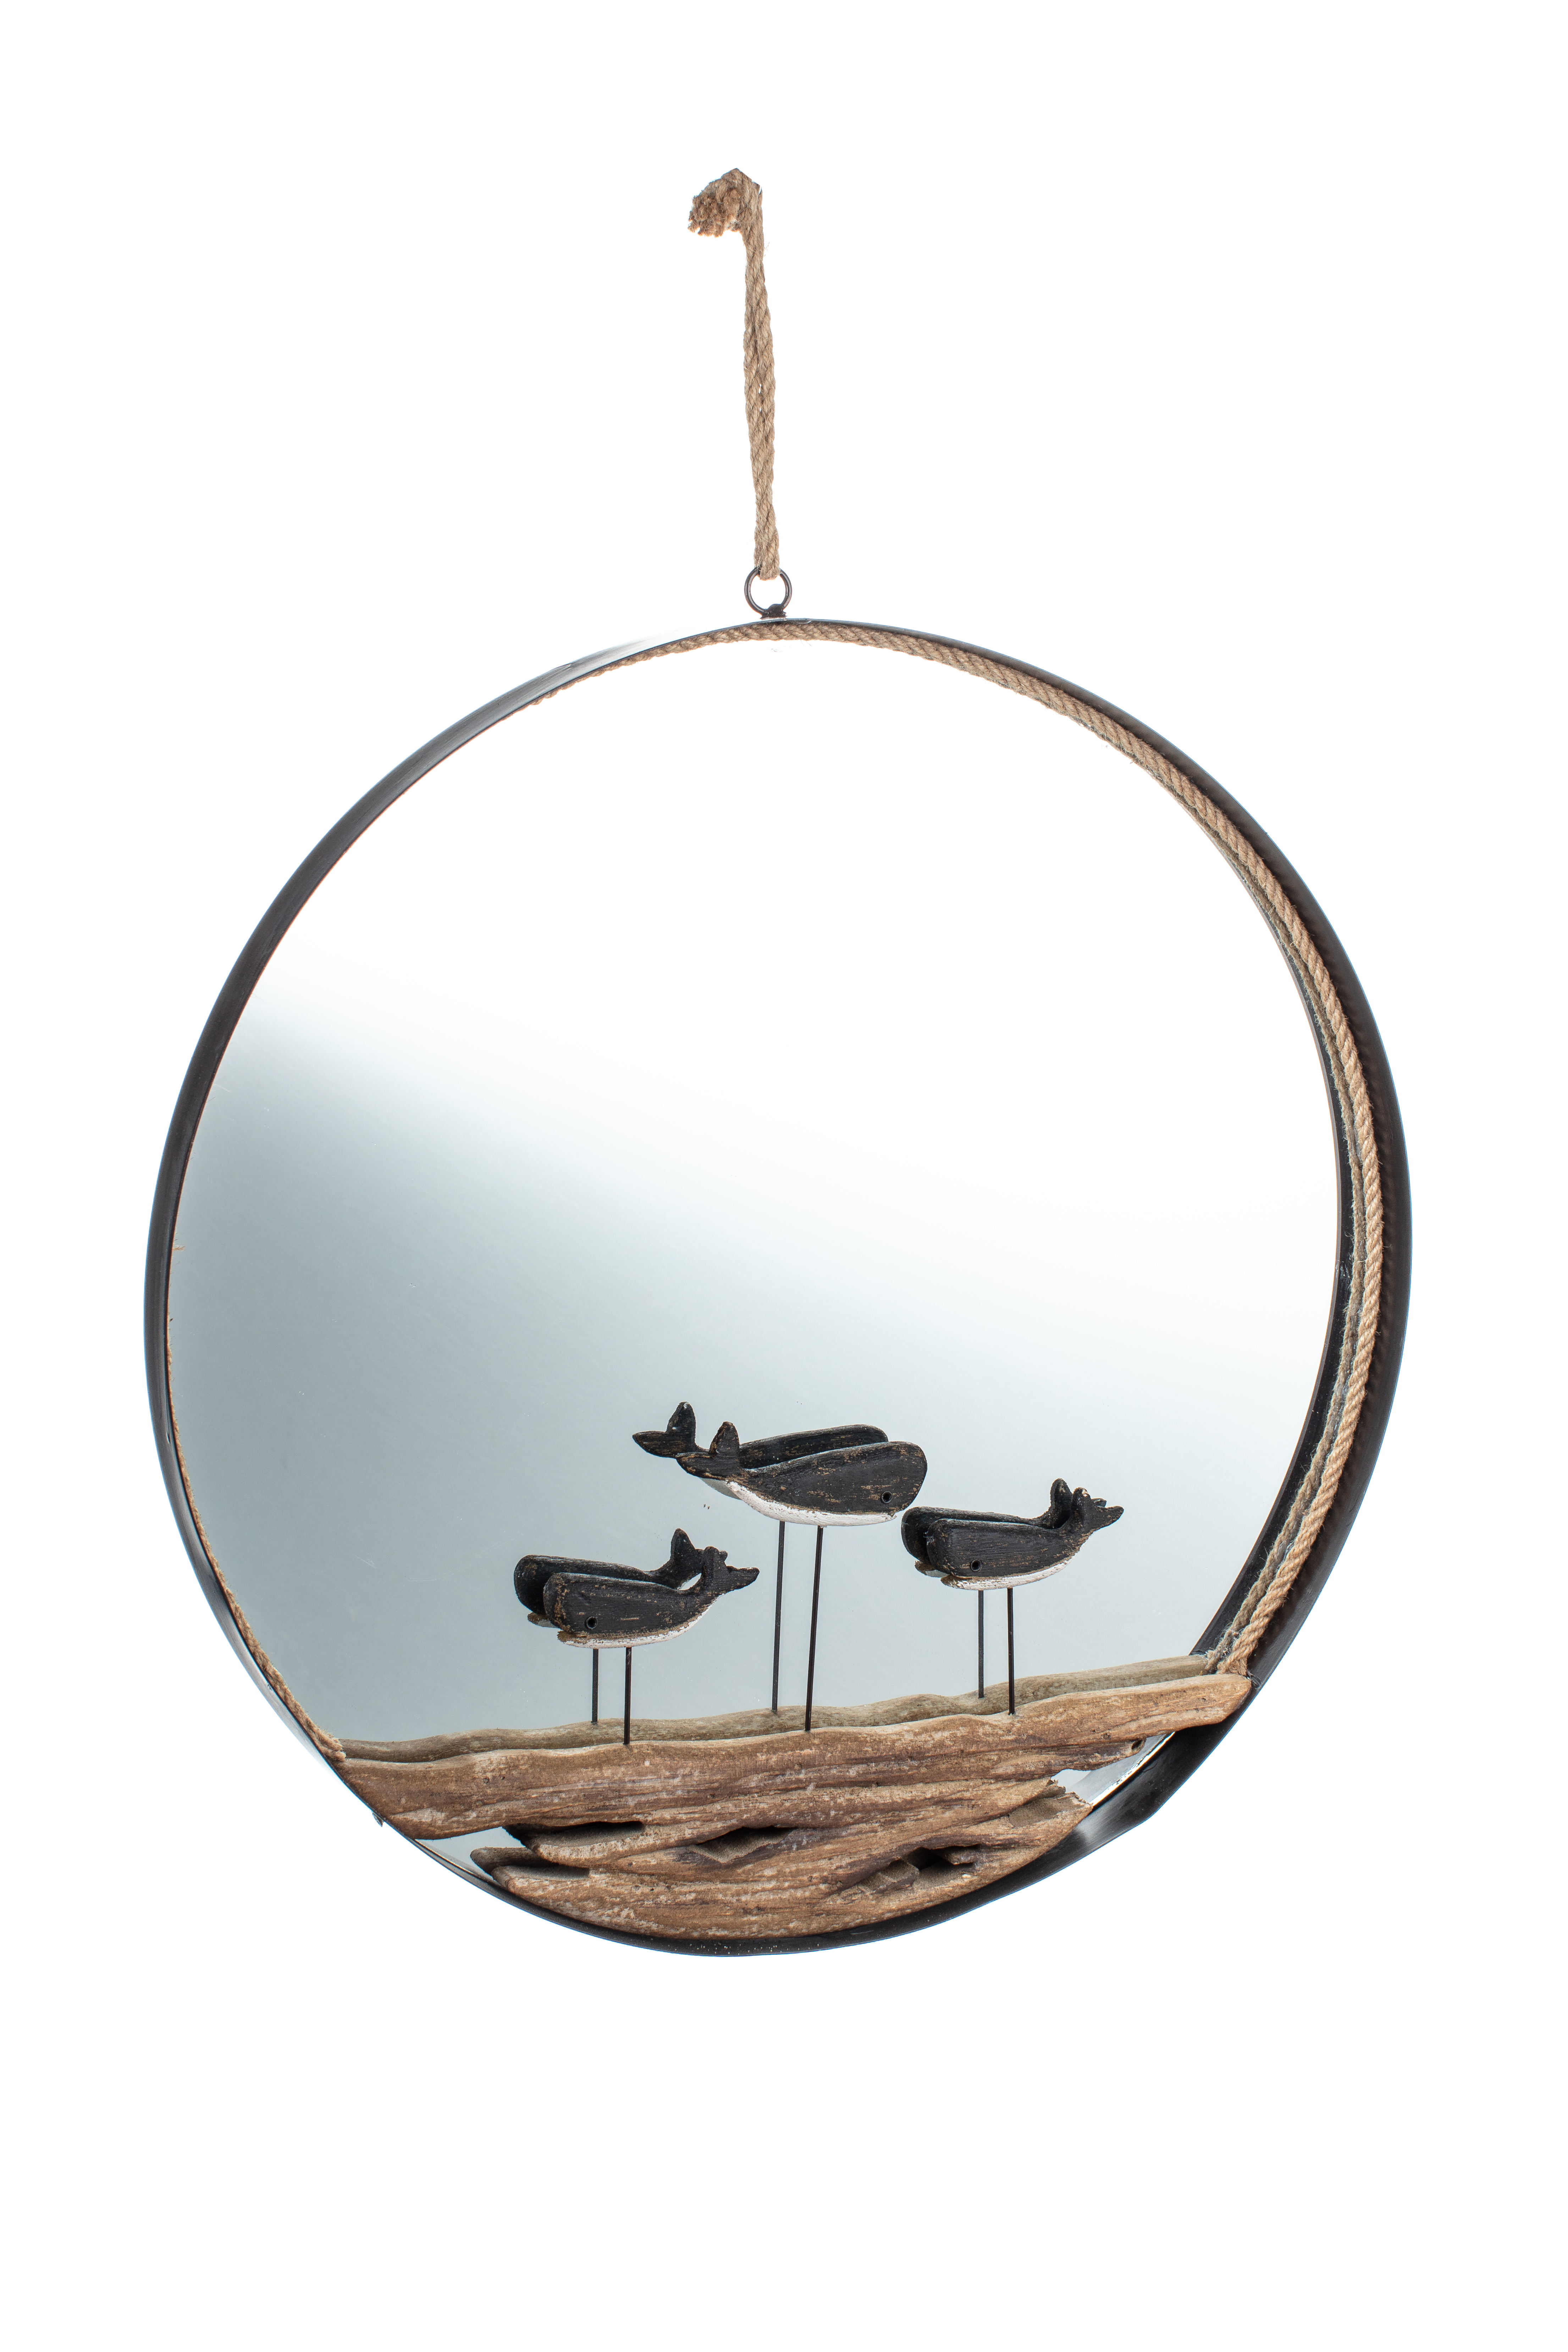 Mirror with Driftwood Whales